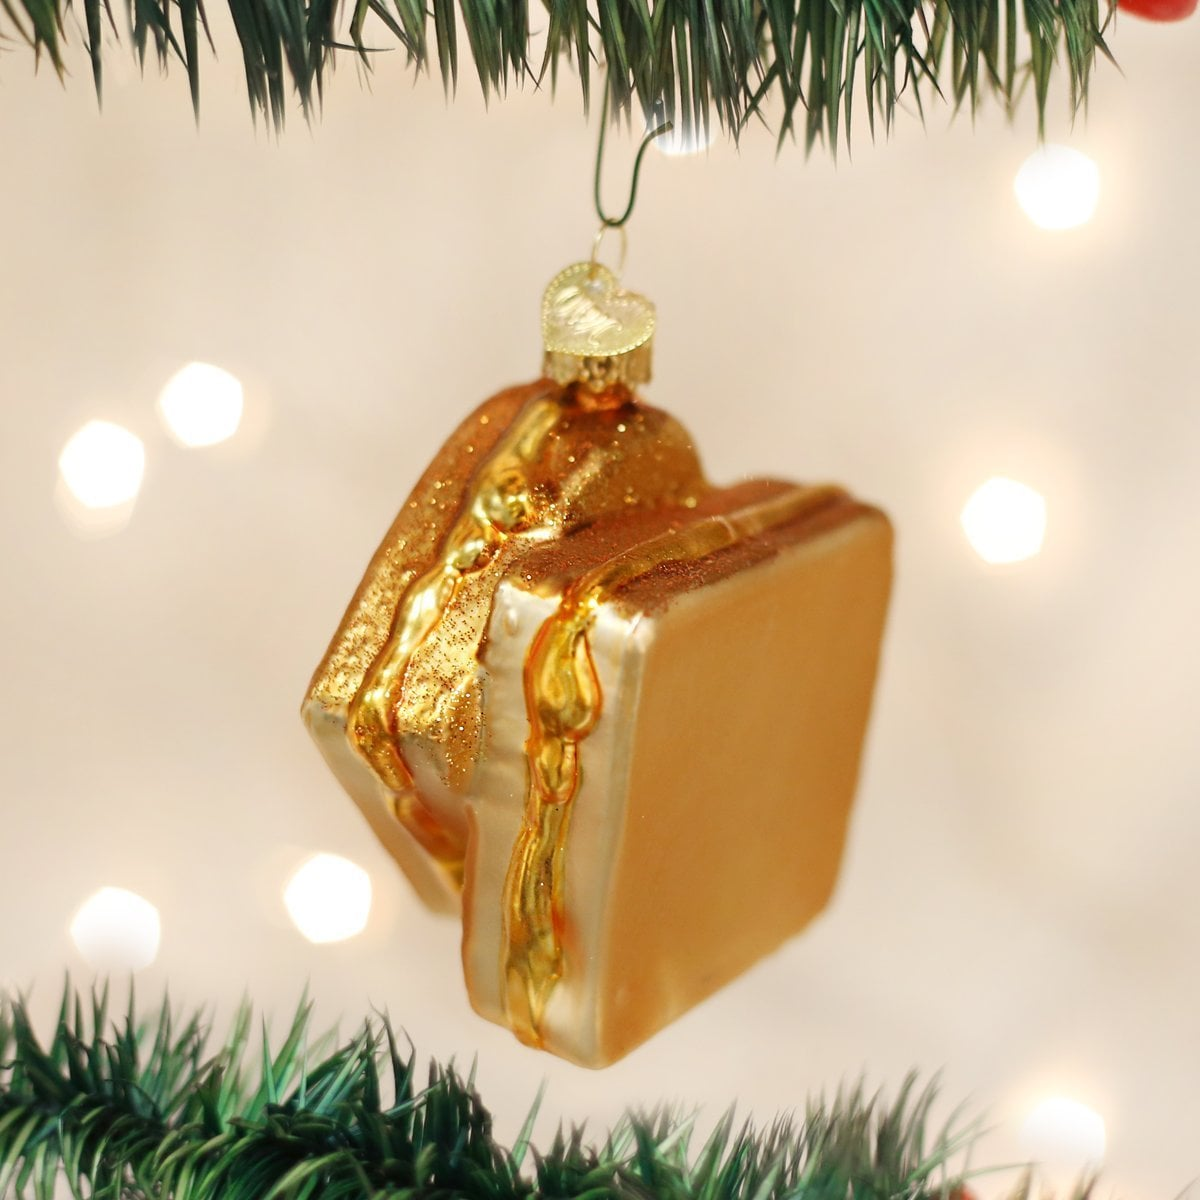 Grilled cheese christmas ornament popsugar food some people decorate their tree with glittery baubles and chic ornaments others prefer to do it with a little more flair if you find yourself in the solutioingenieria Image collections